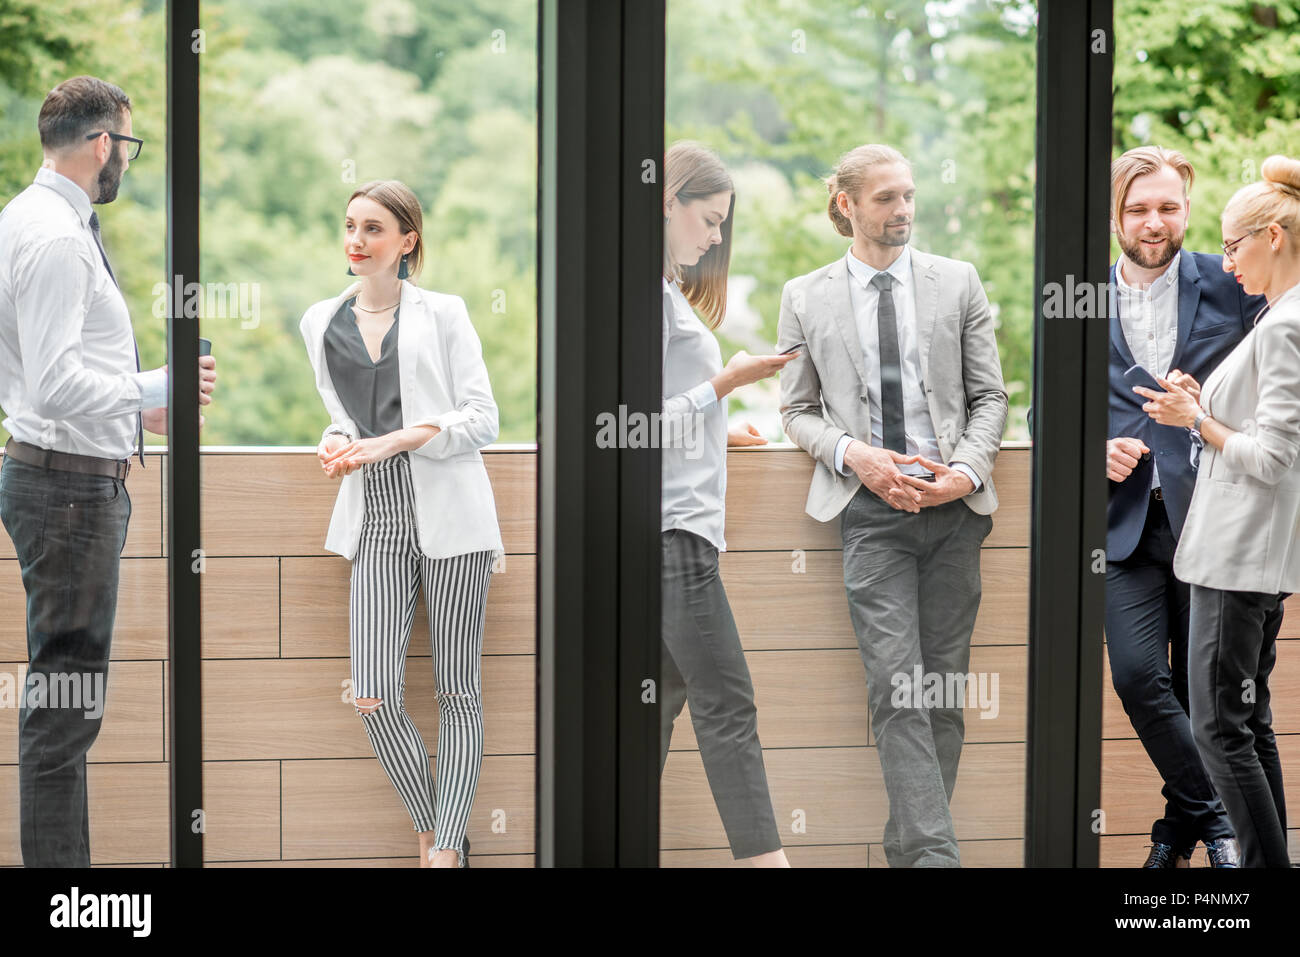 Business people on the office balcony during a break - Stock Image